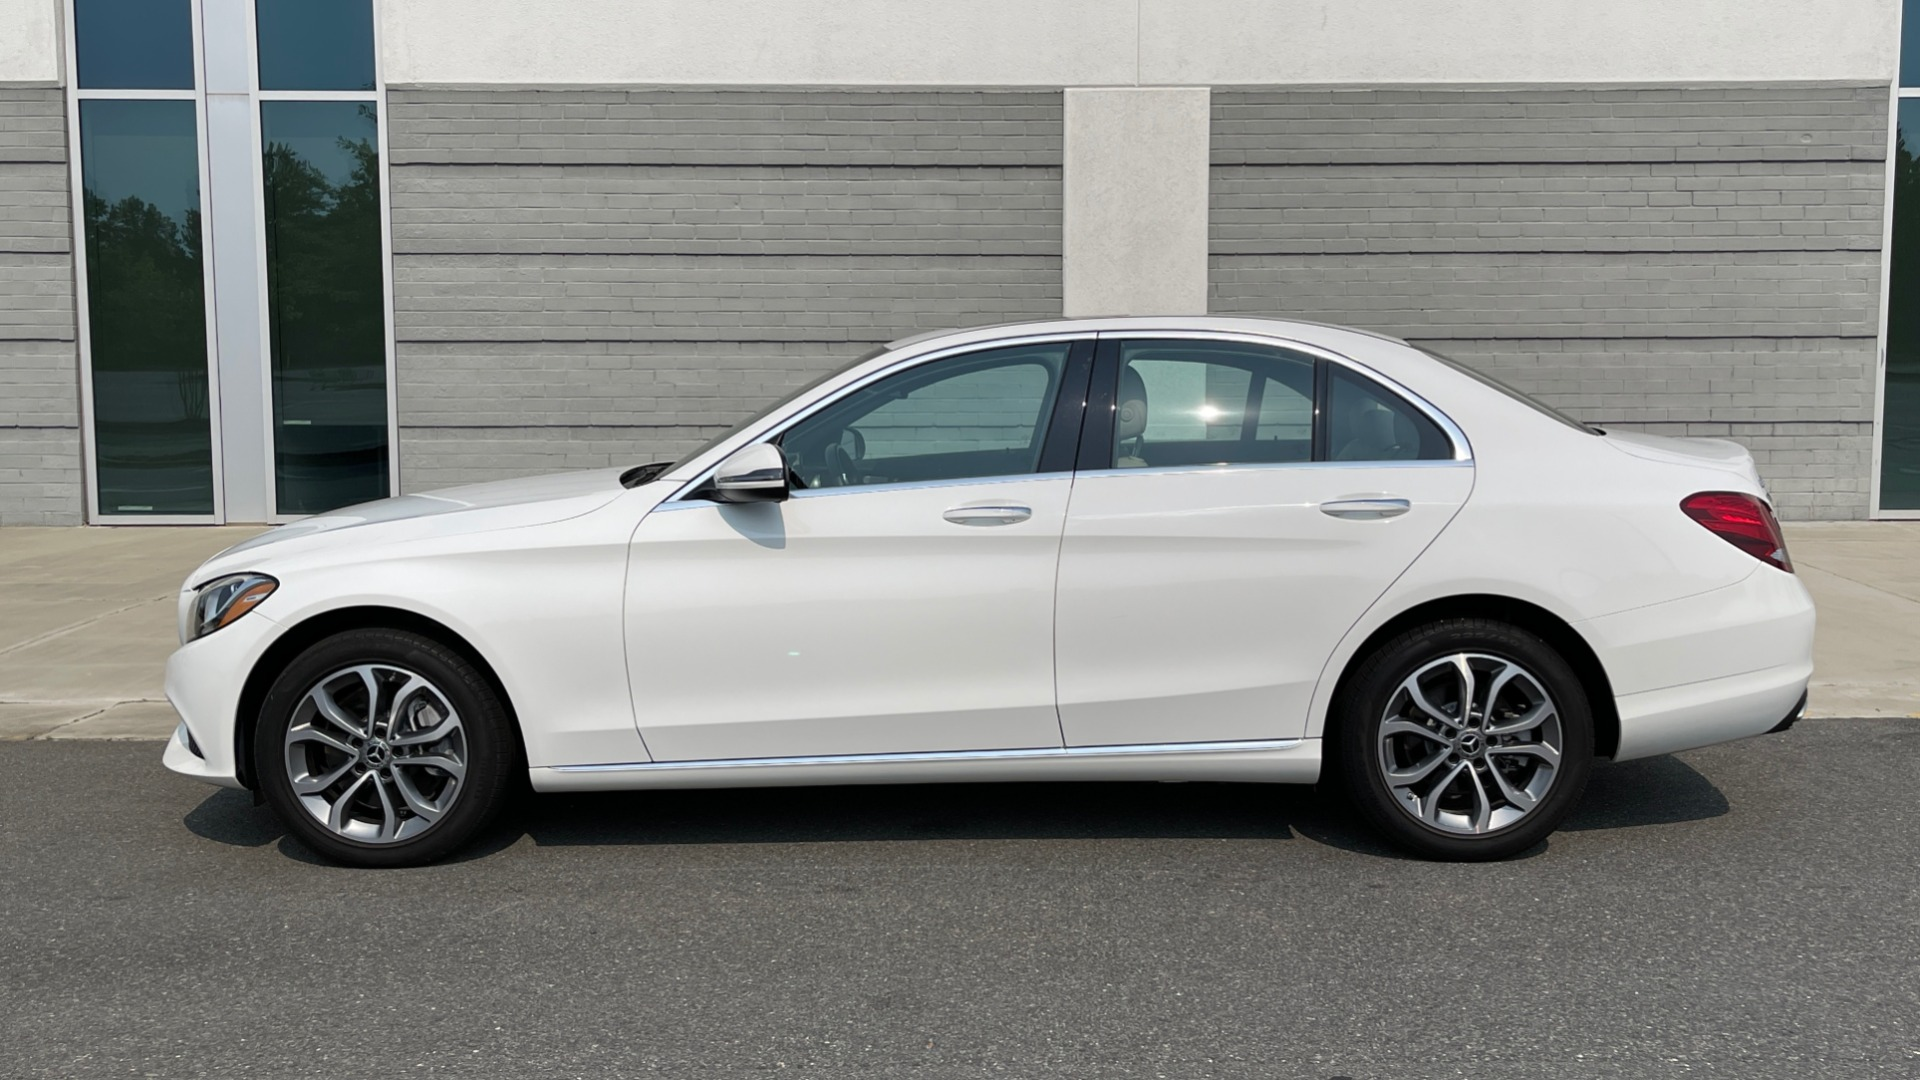 Used 2018 Mercedes-Benz C-Class C 300 4MATIC / PREMIUM / BURMESTER / HTD STS / SUNROOF / REARVIEW for sale $33,995 at Formula Imports in Charlotte NC 28227 4